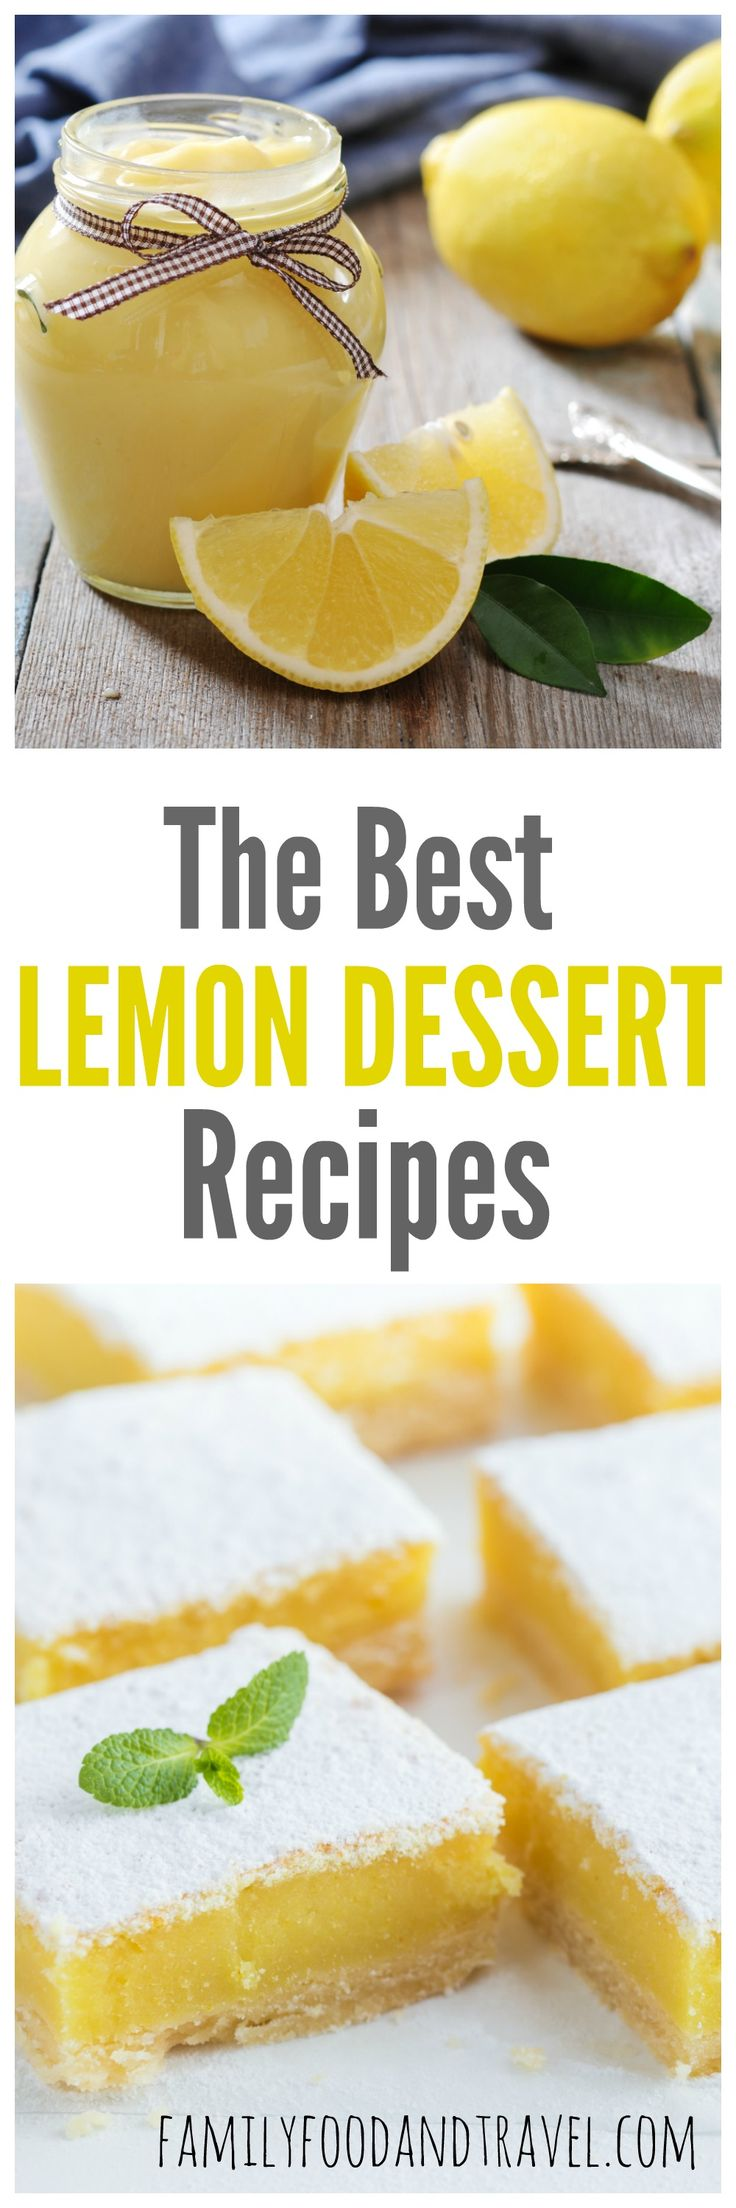 25 Luscious Lemon Desserts: From Tangy to Sweet